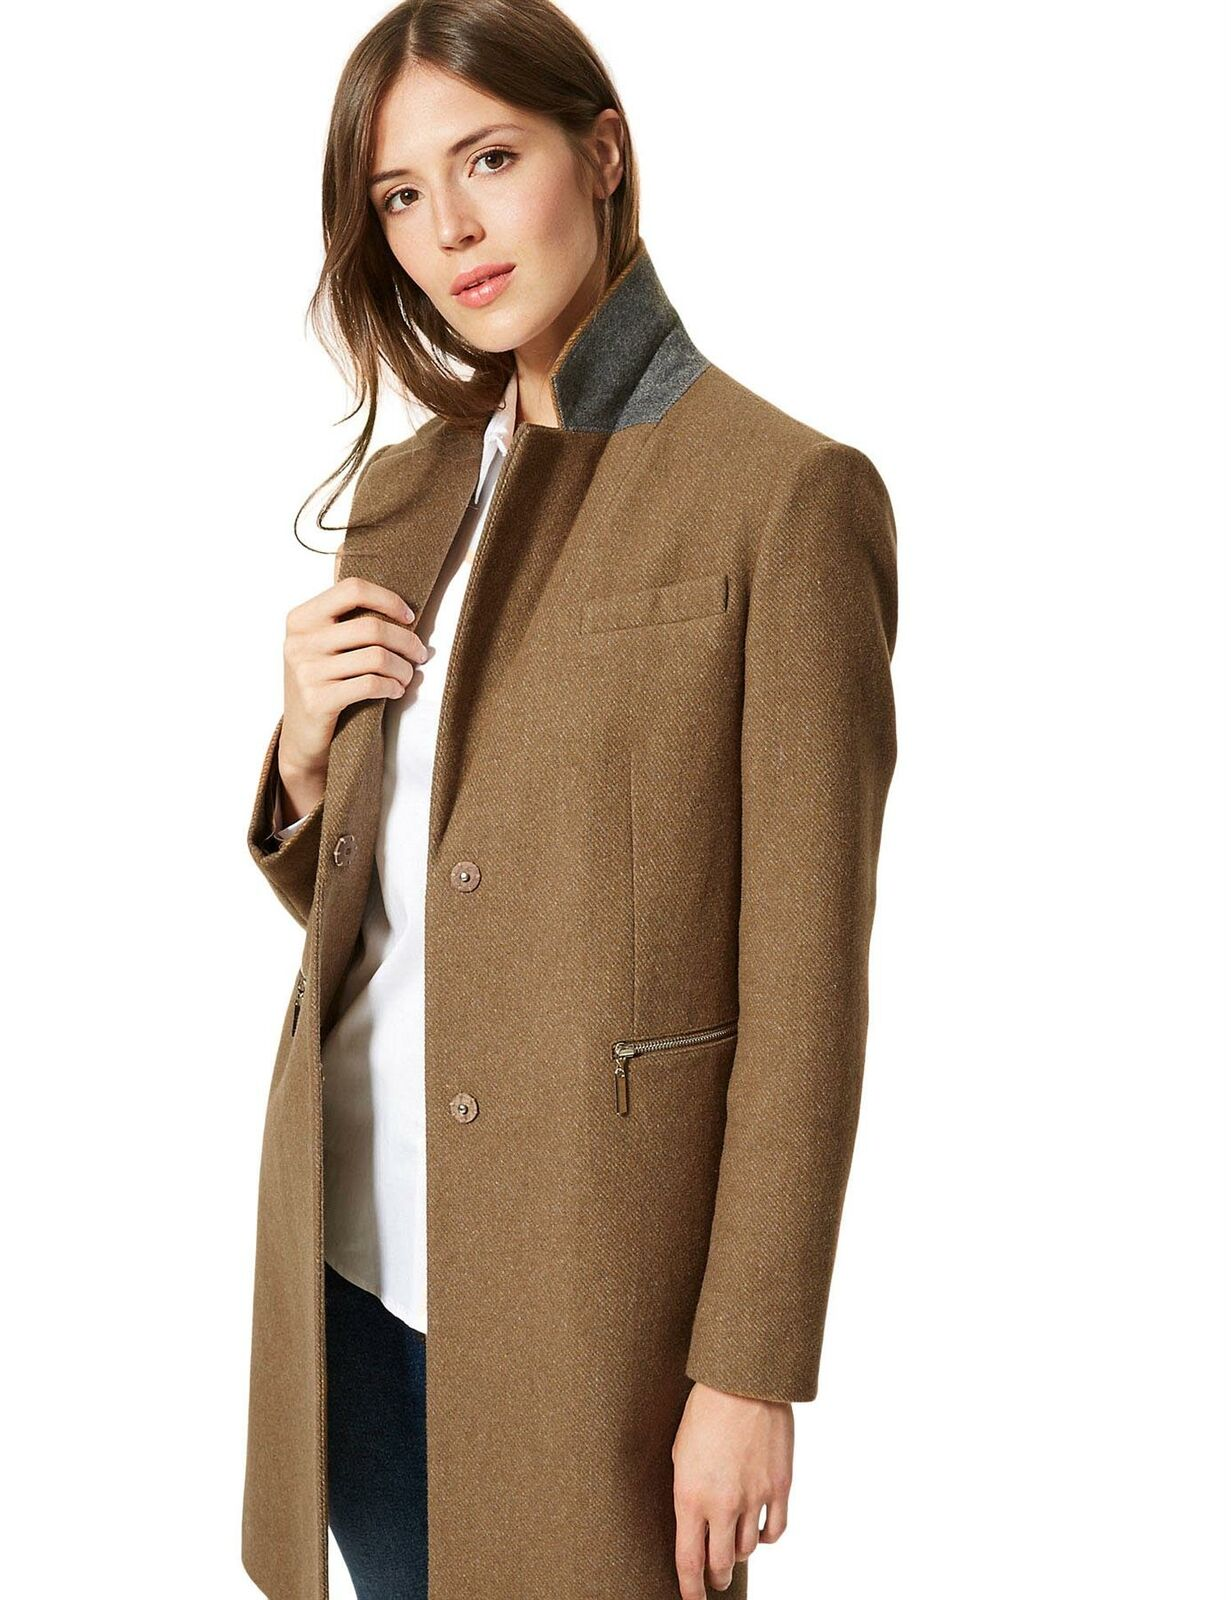 M-amp-S-Wool-Blend-Single-Breasted-Pink-Brown-Winter-Coat-Holly-Willoughby-Size-6-24 thumbnail 23